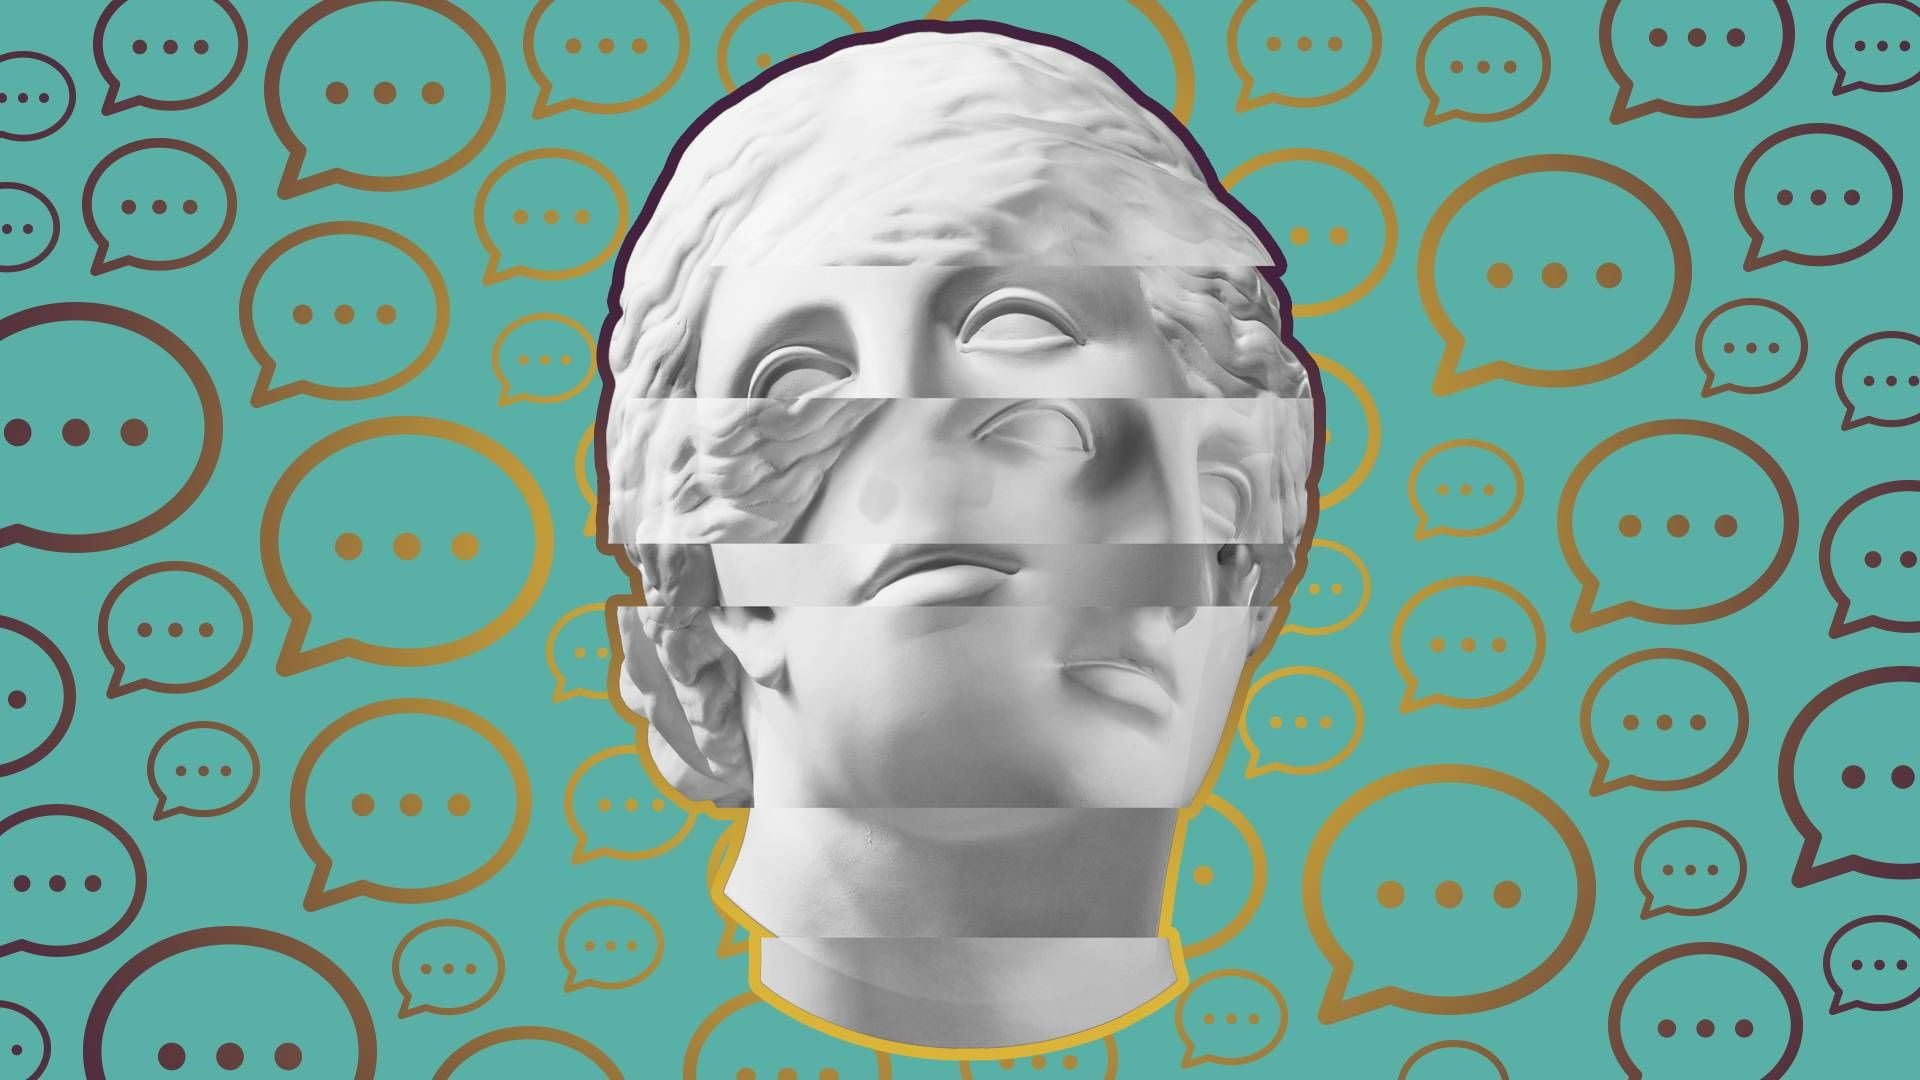 Two different marble busts are intercut over a backdrop of chat bubbles. Rewire Ask Me Instead